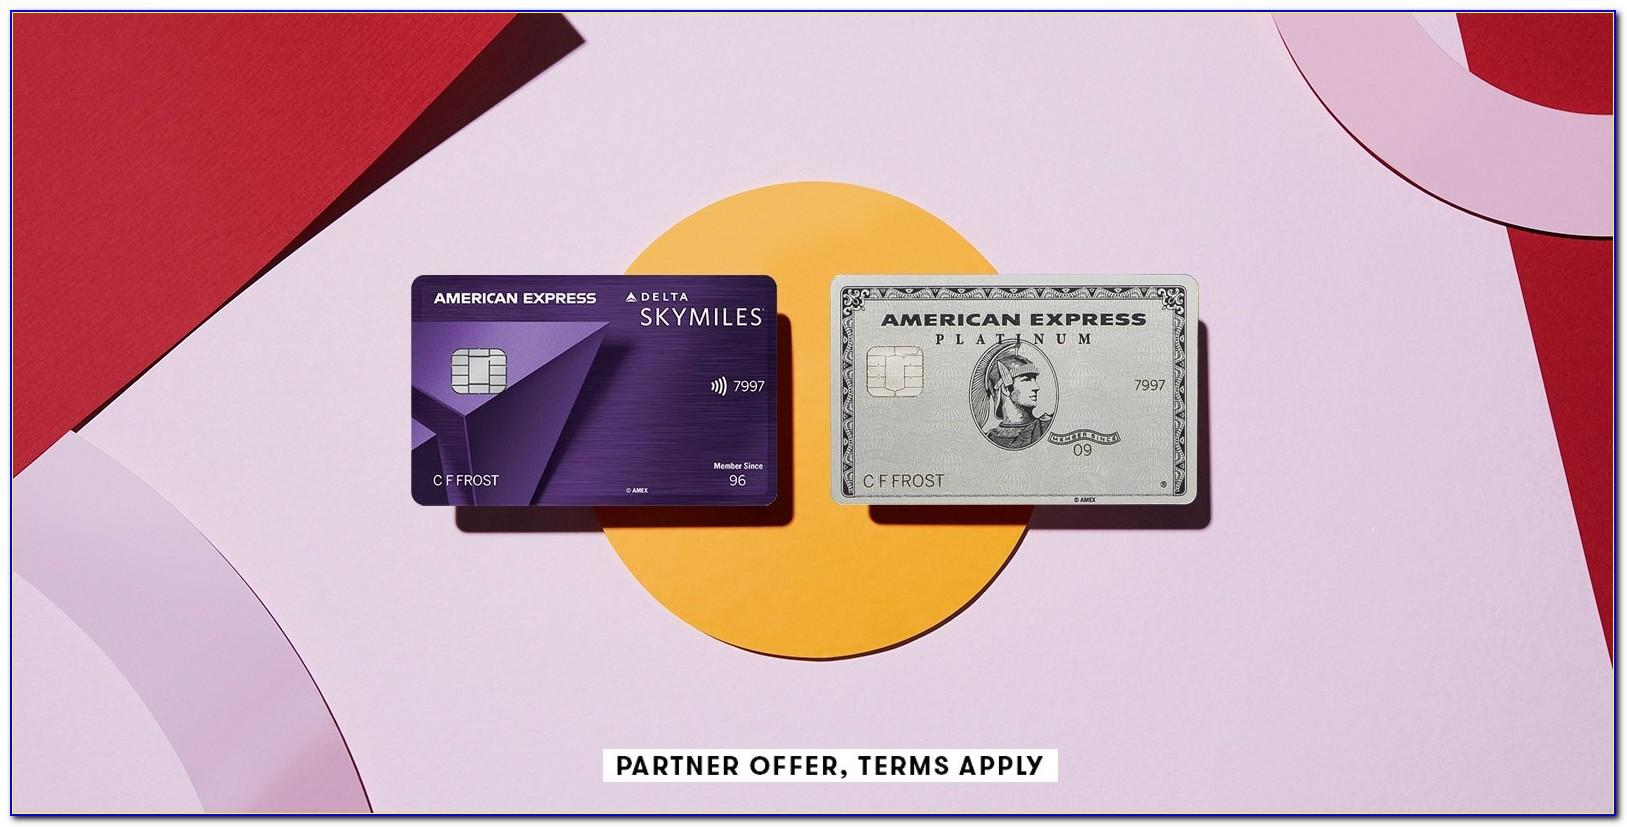 Delta Skymiles Business Credit Card